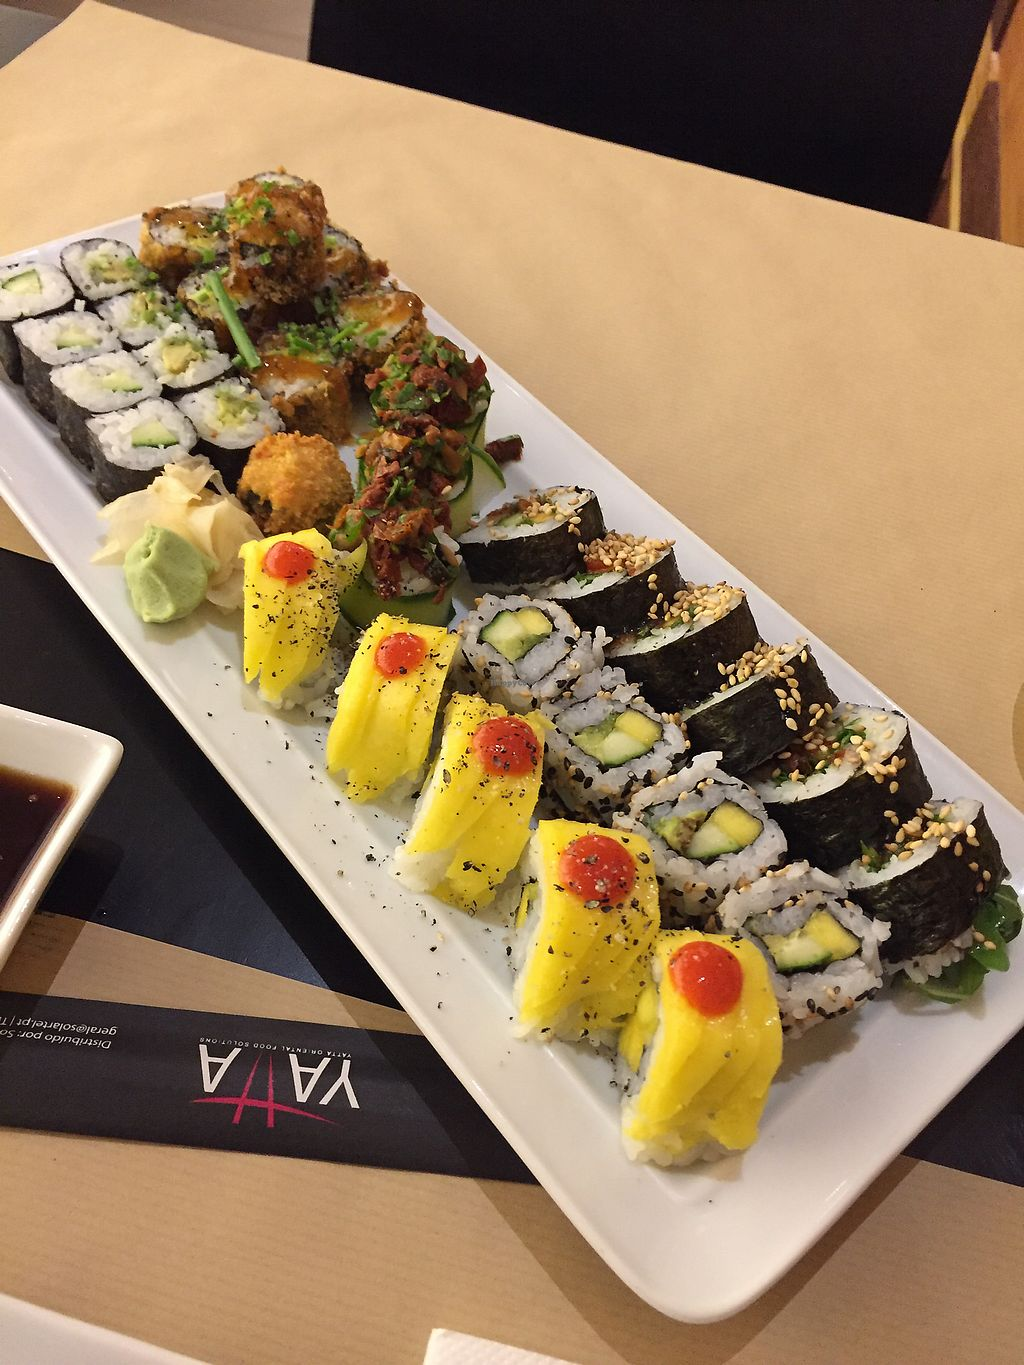 """Photo of Teppan  by <a href=""""/members/profile/AdrianaMartins"""">AdrianaMartins</a> <br/>Sushi <br/> February 21, 2018  - <a href='/contact/abuse/image/60098/362160'>Report</a>"""